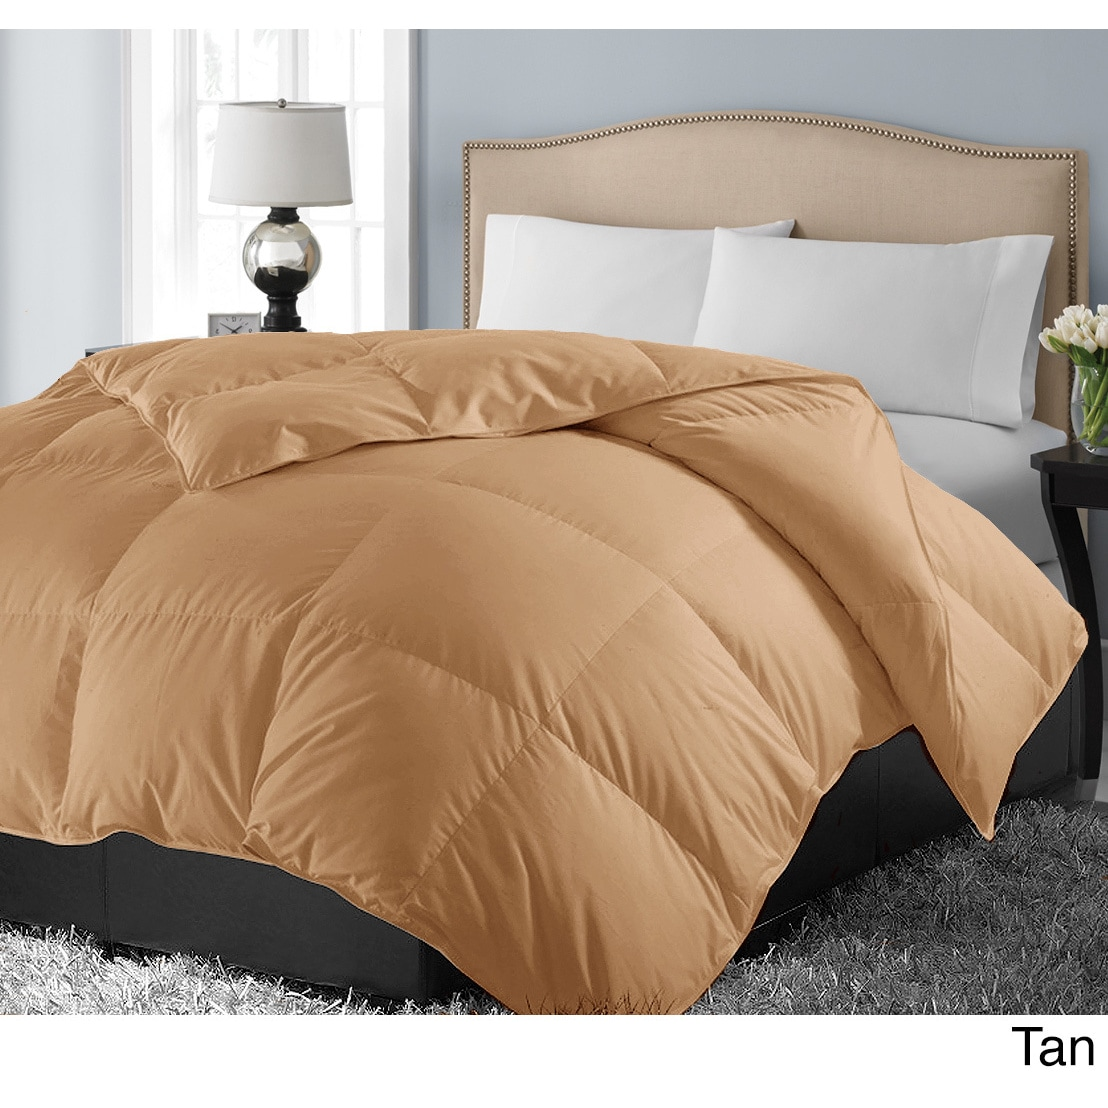 and for guide com x bedroom comforter soft with down skasktsbuindonesia comforters ideas good floor mattress decor wooden blue buying brown also